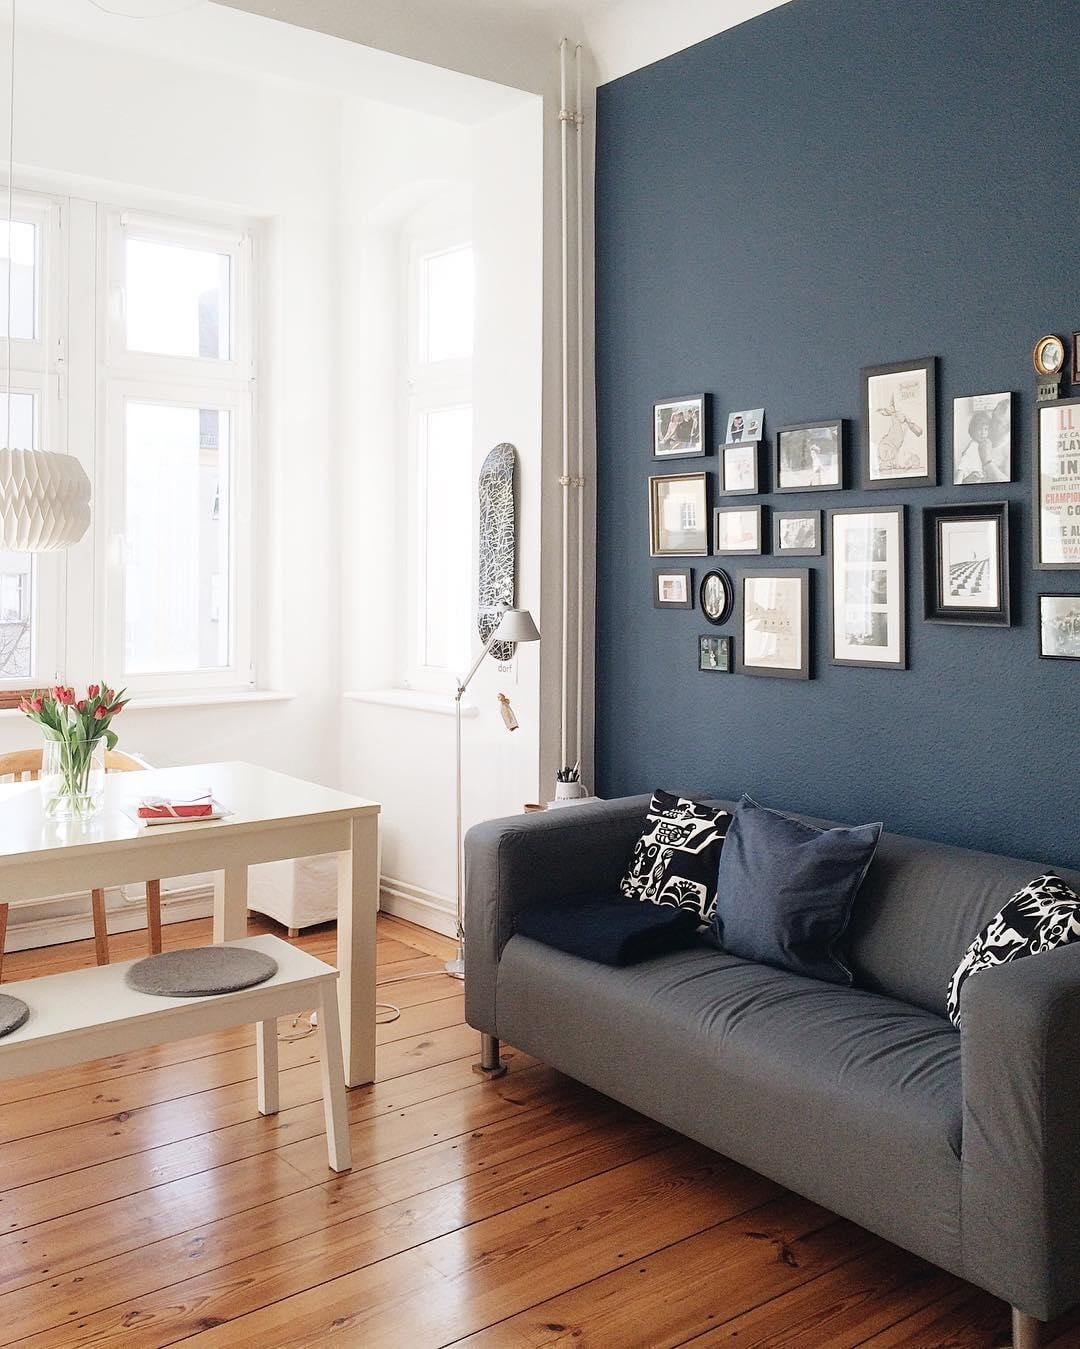 Blue Accent Wall For An Eclectic Interior. Are You Looking